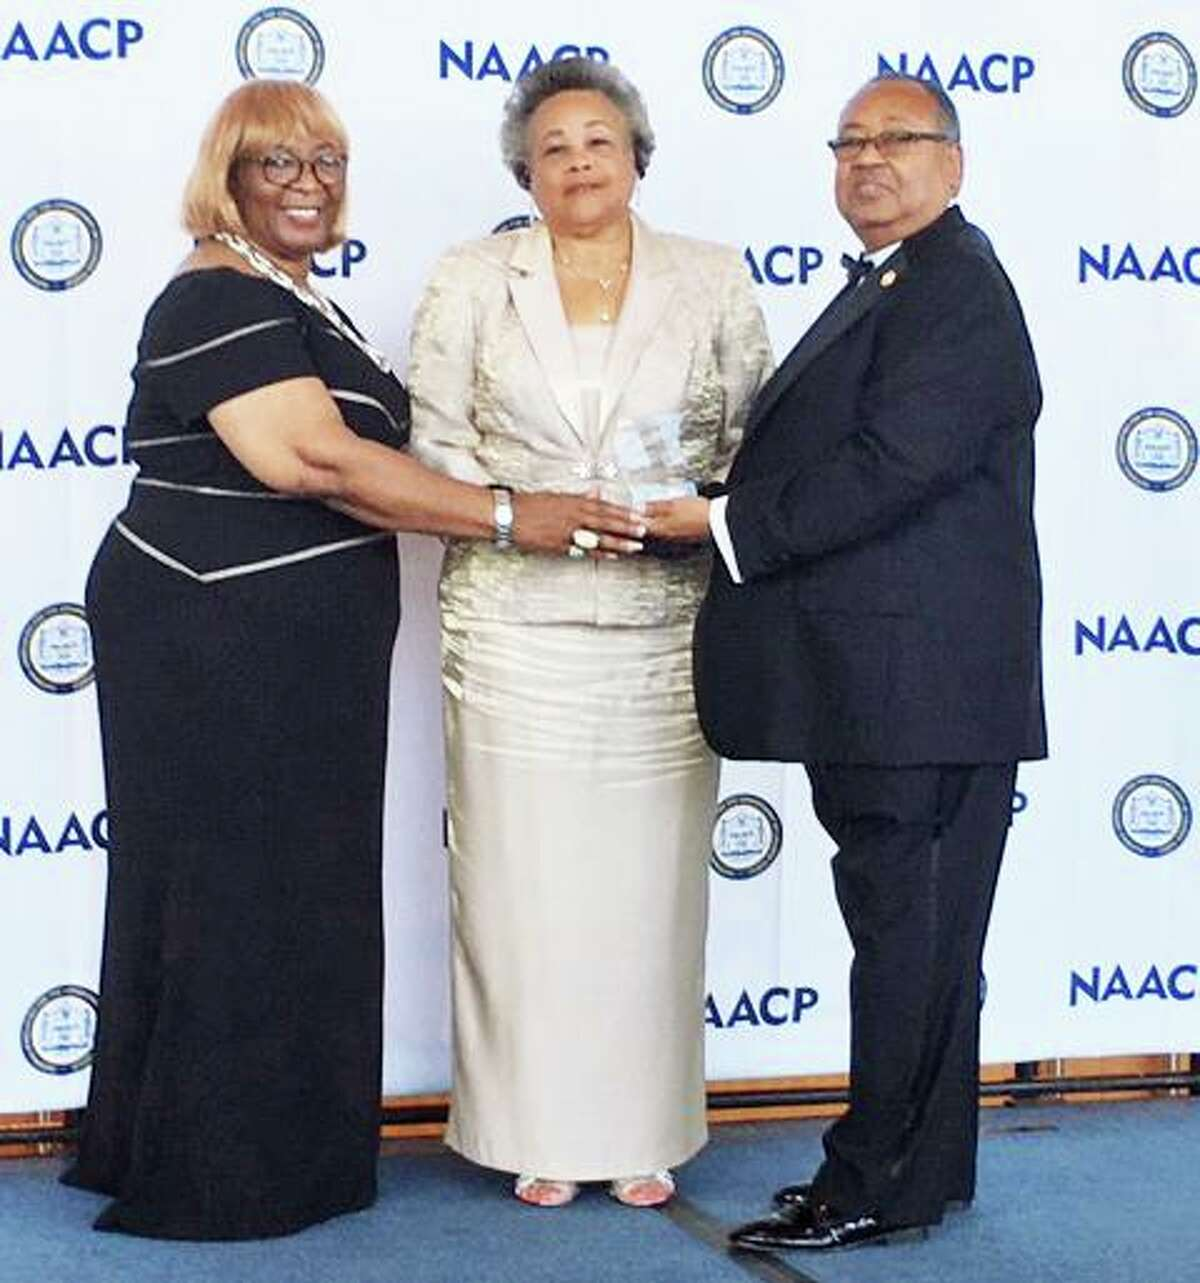 From left are Gloria Sweet-Love, president, NAACP Tennessee State Conference, and Region V Thalheimer Committee member; Middlesex County NAACP President Faith M. Jackson, and Leon Russell, chairman of the National NAACP Board of Directors.